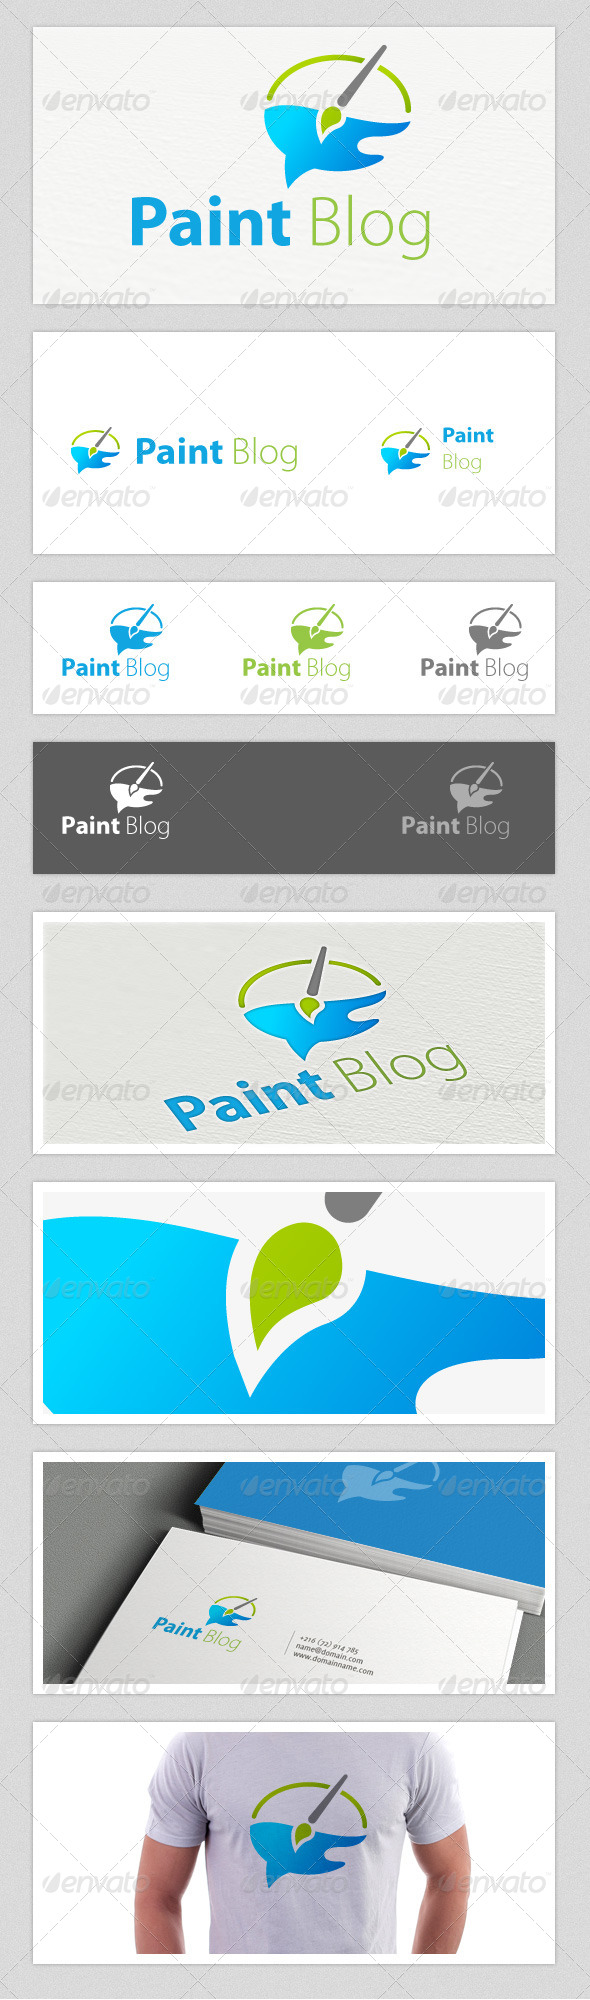 Paint Blog Logo